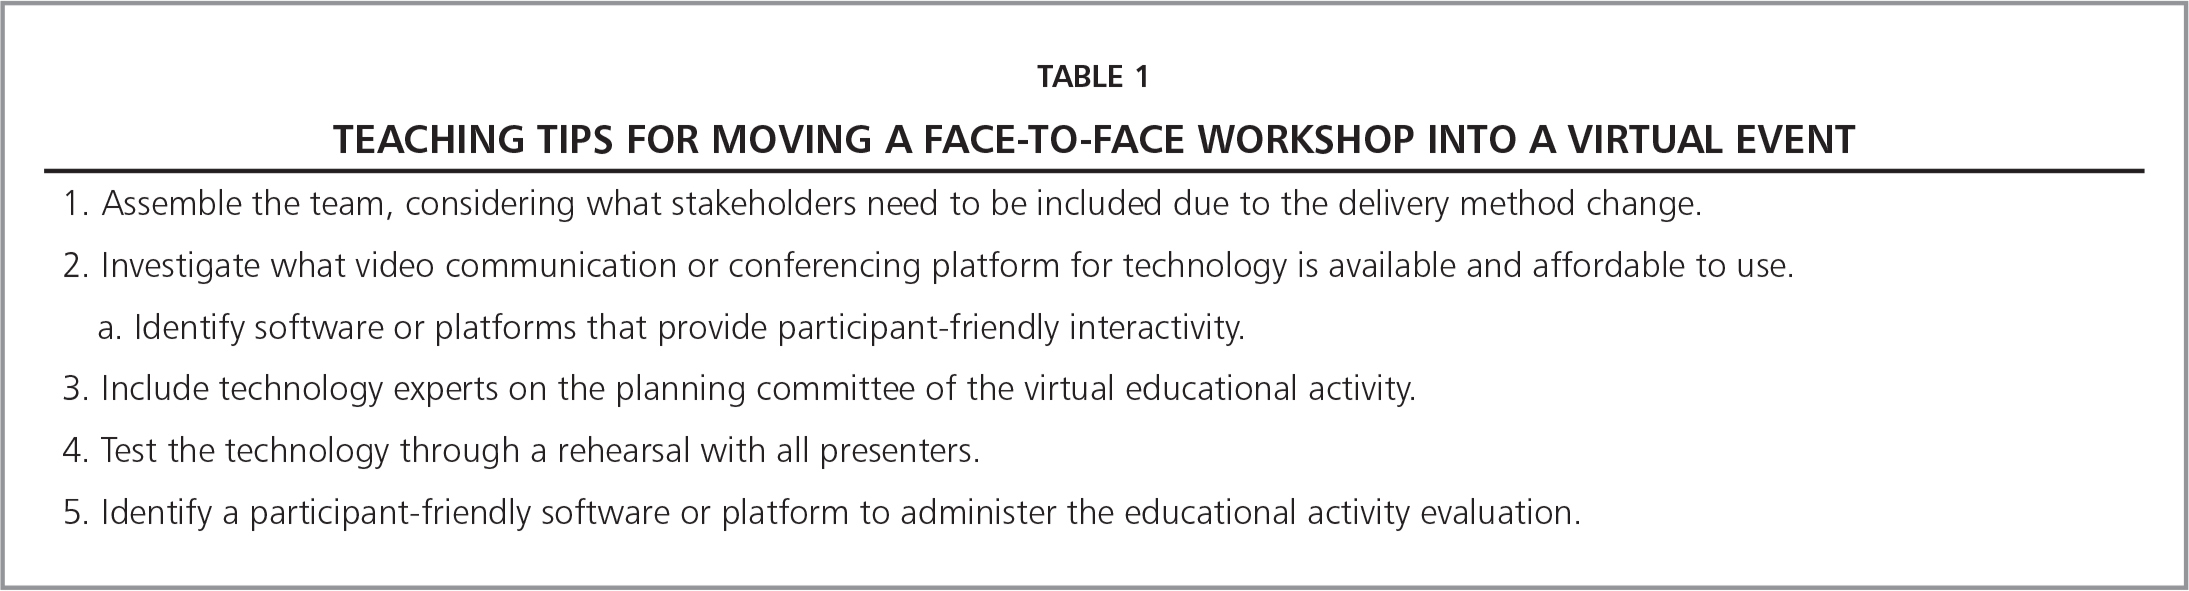 Teaching Tips for Moving a Face-To-Face Workshop into a Virtual Event